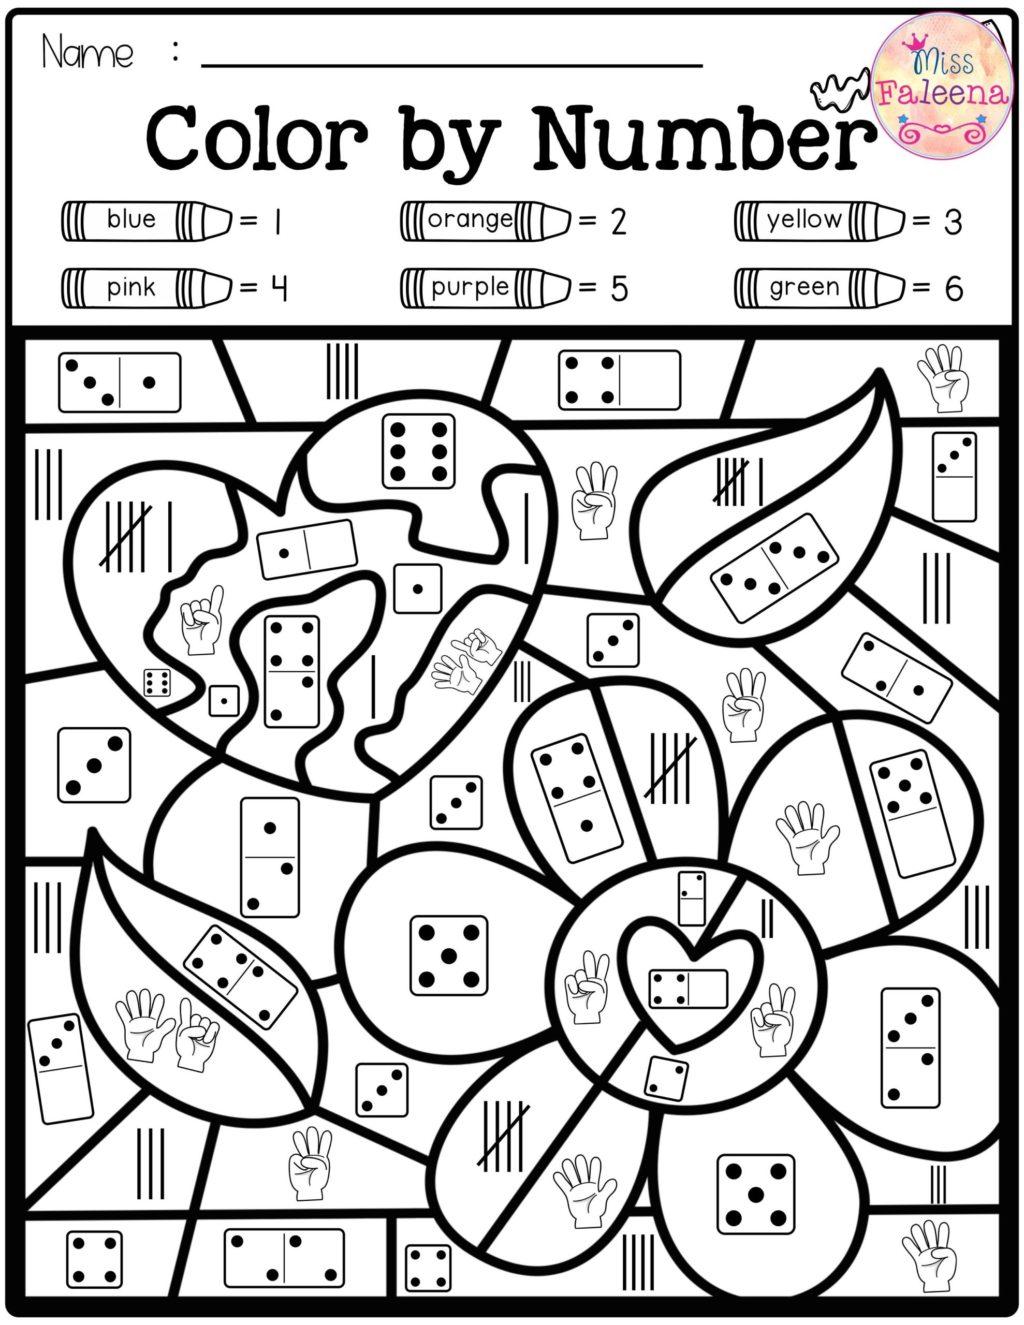 Worksheet ~ Coloring Pages Spring Colorcode Math Number